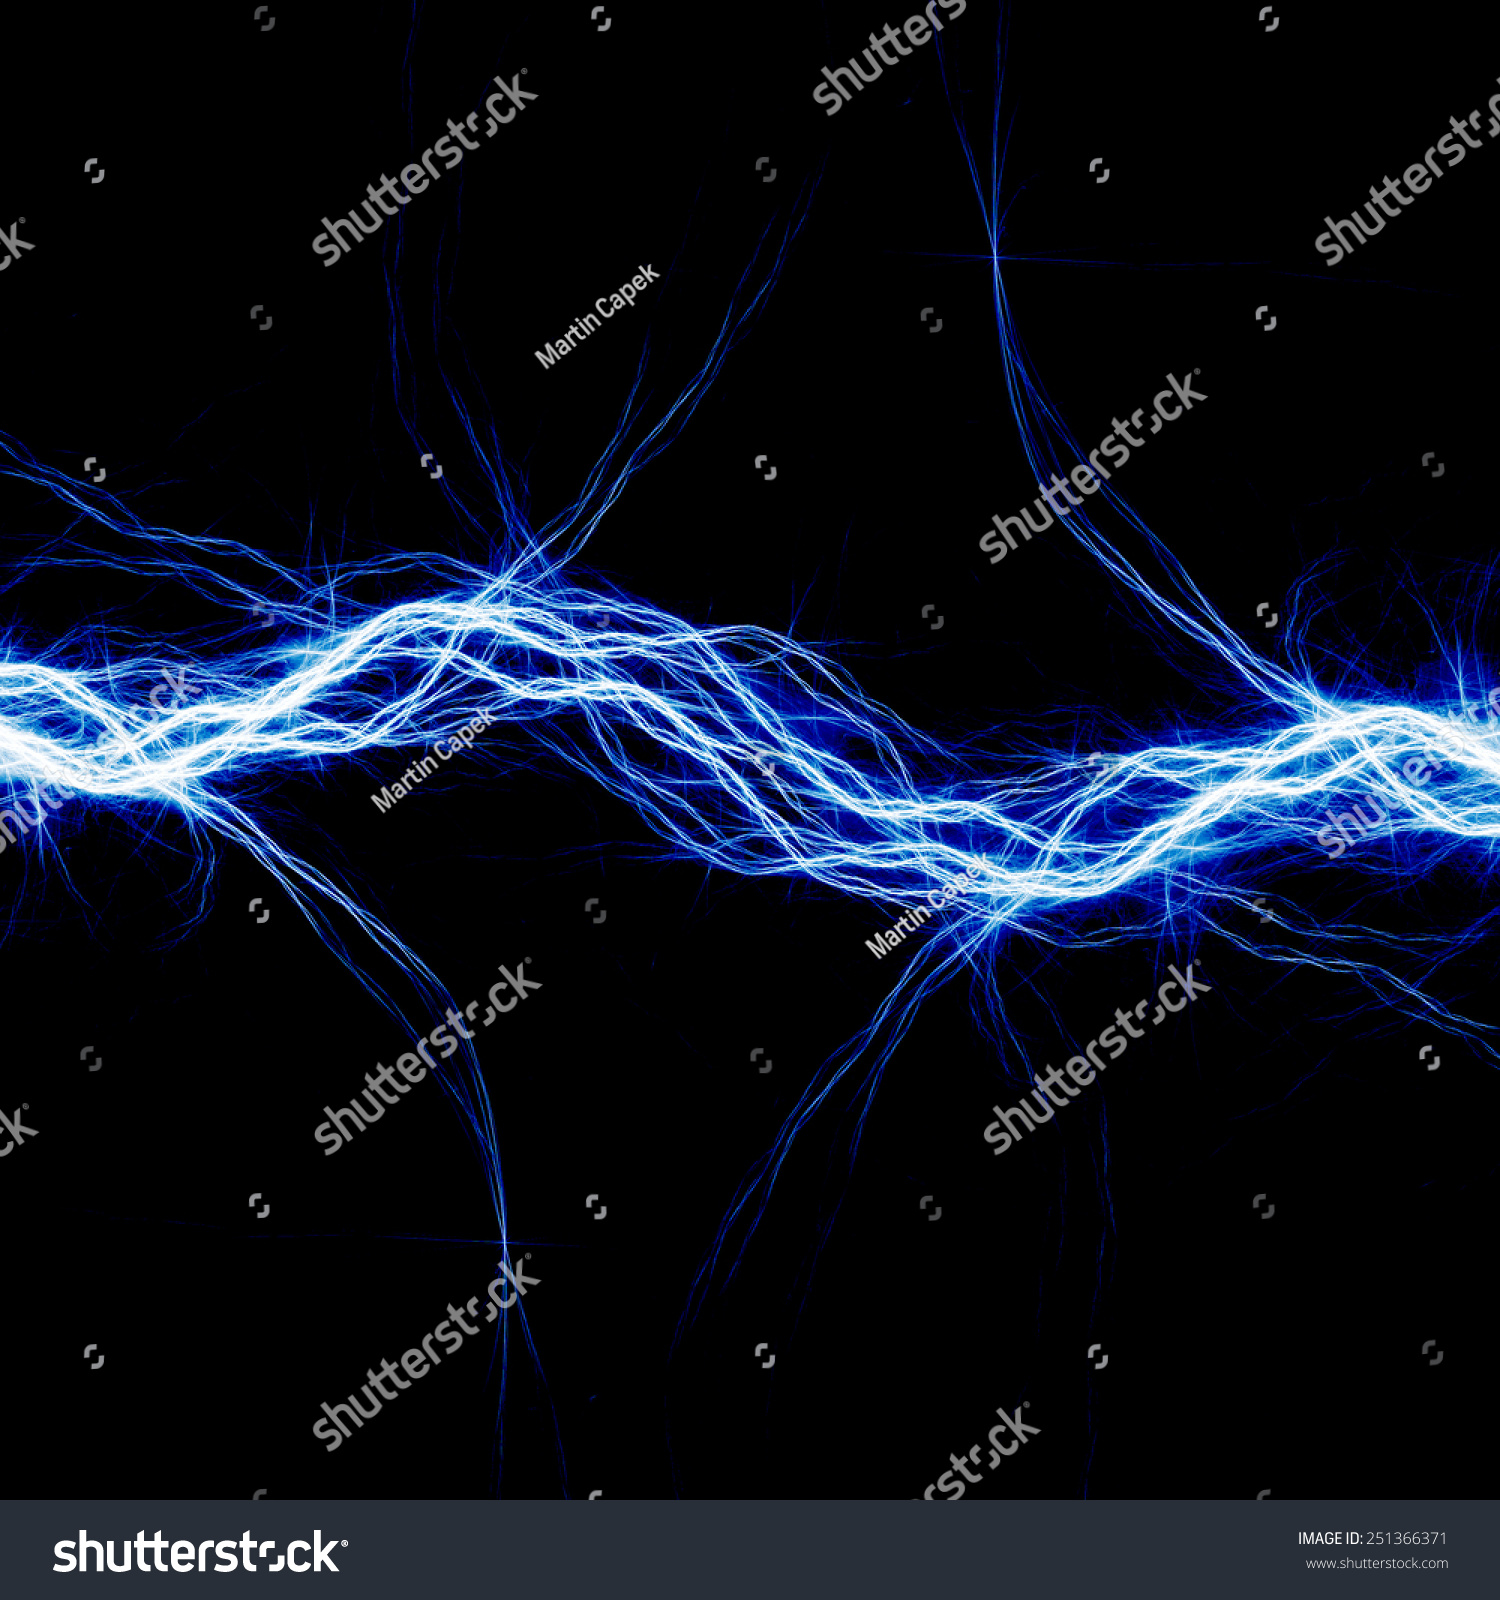 abstract blue electricity - photo #42